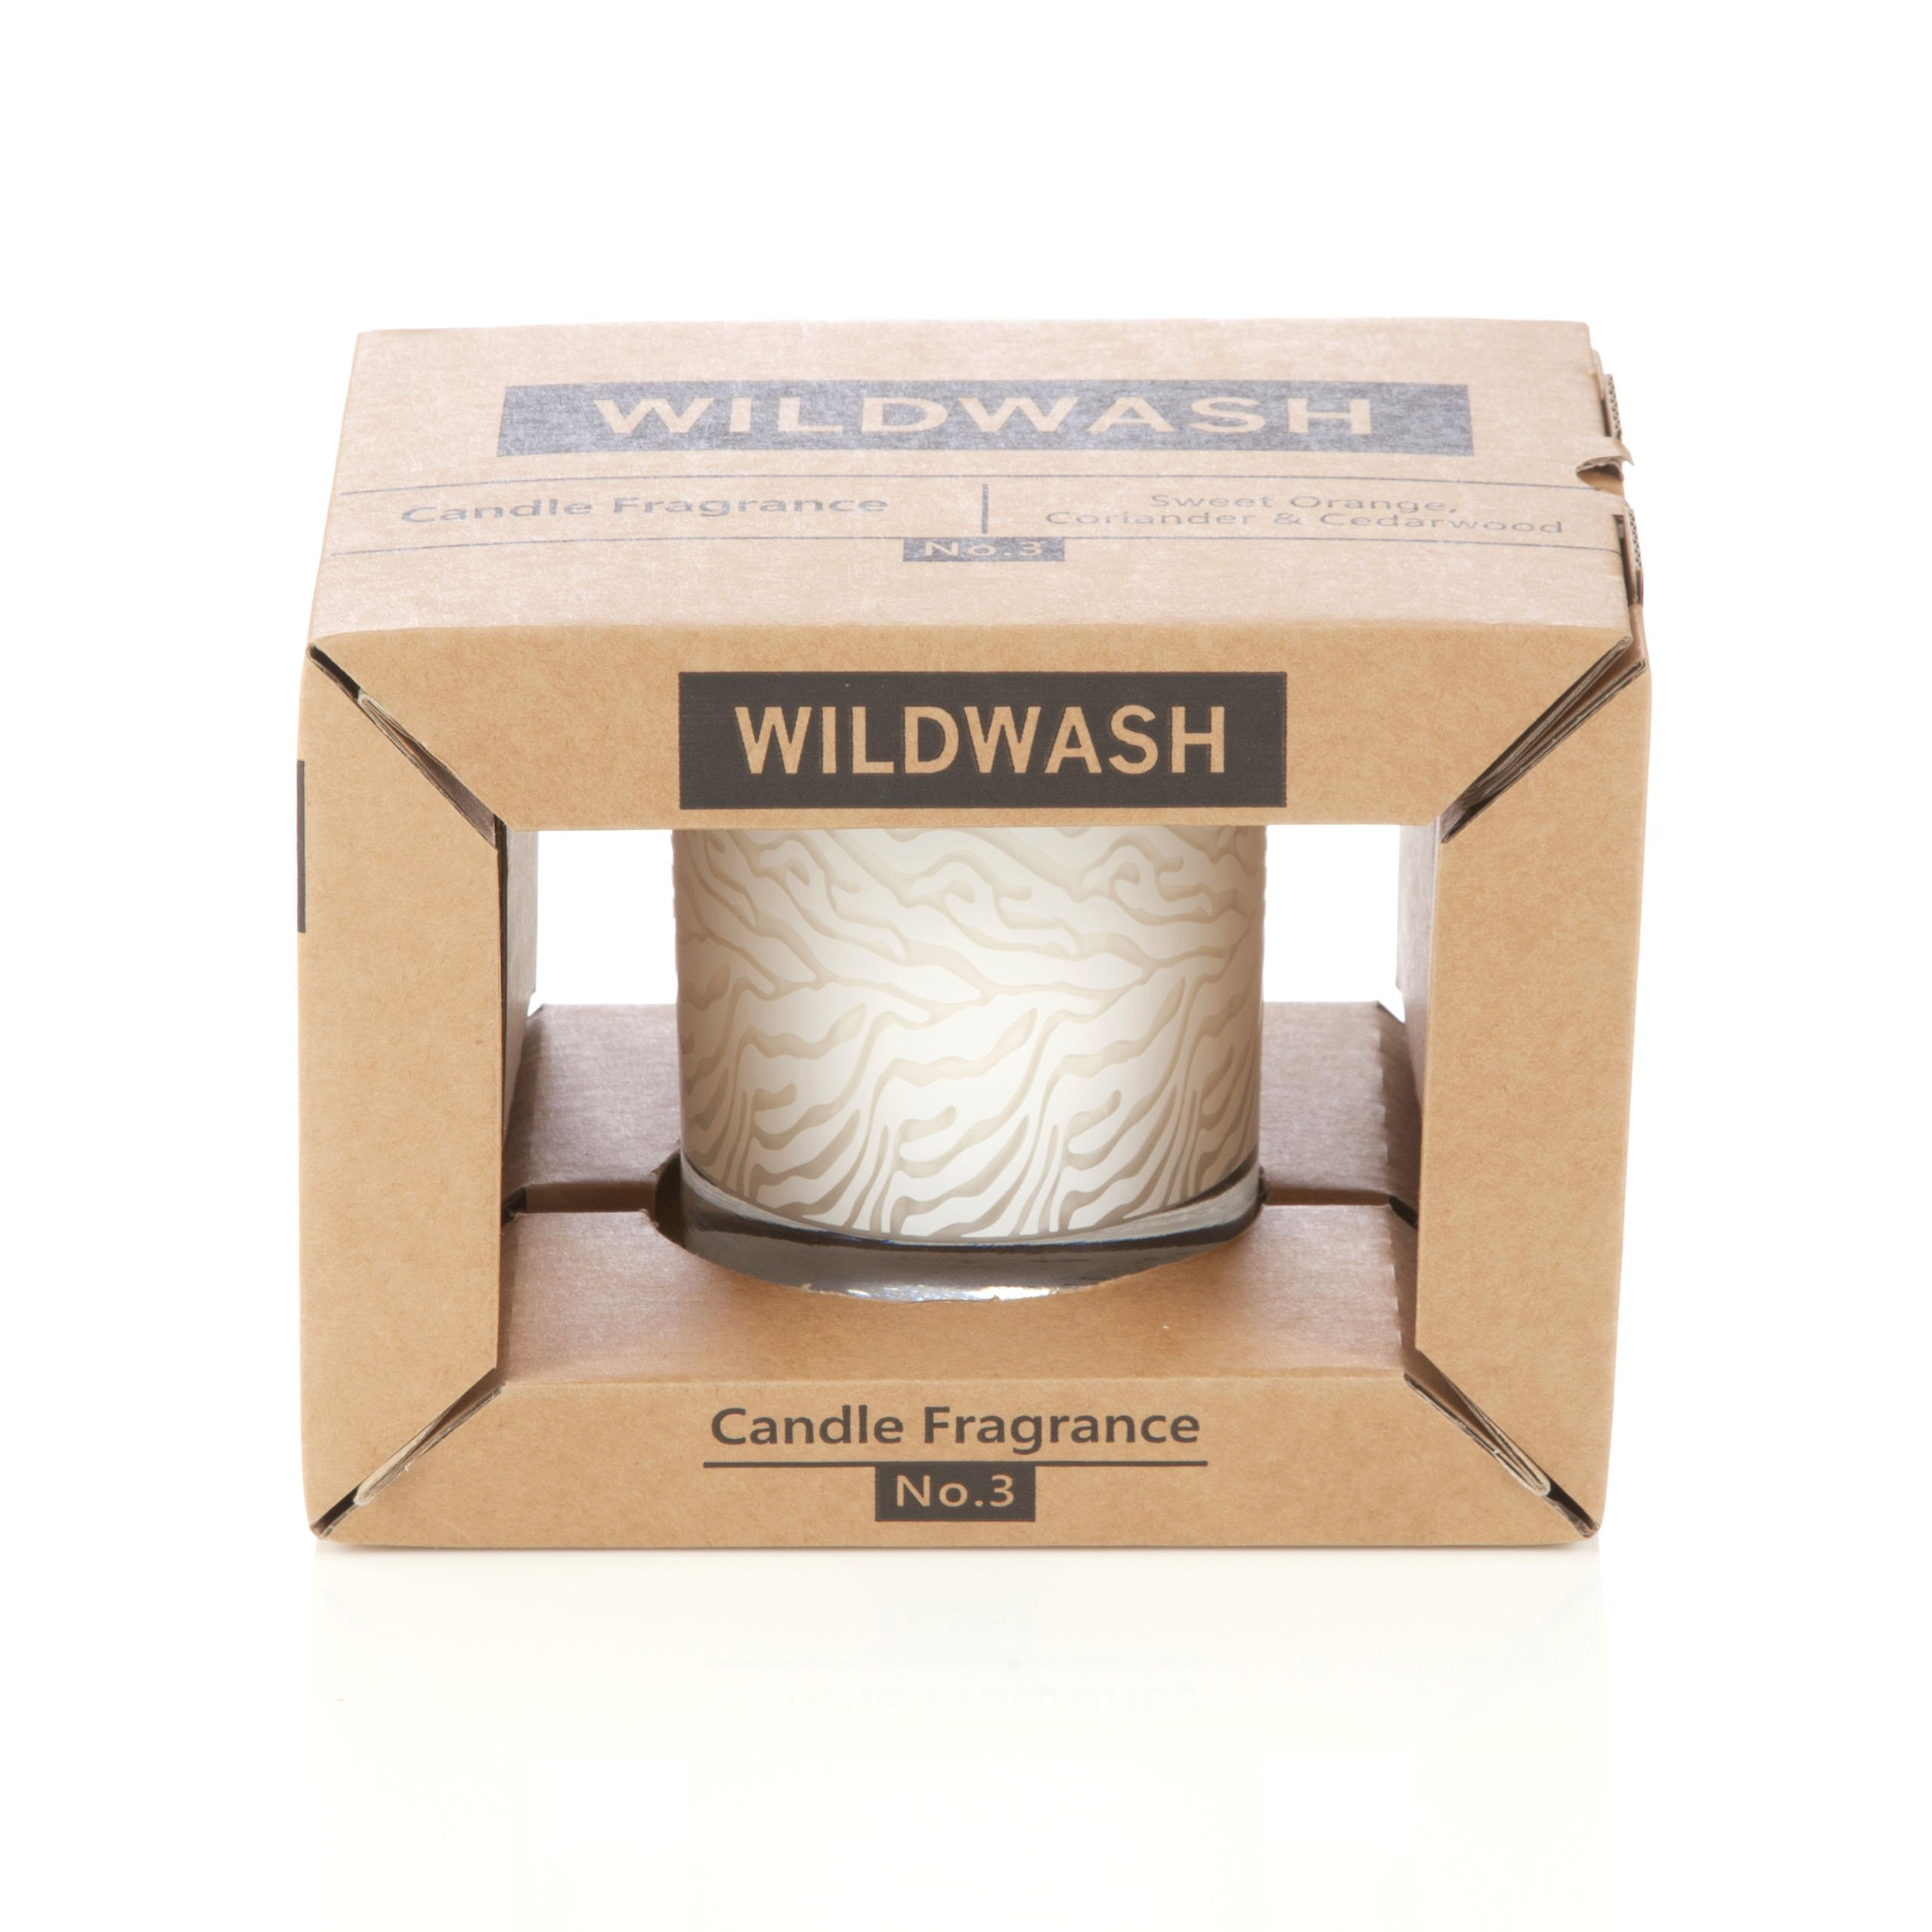 WildWash Number 3 Candle Fragrance